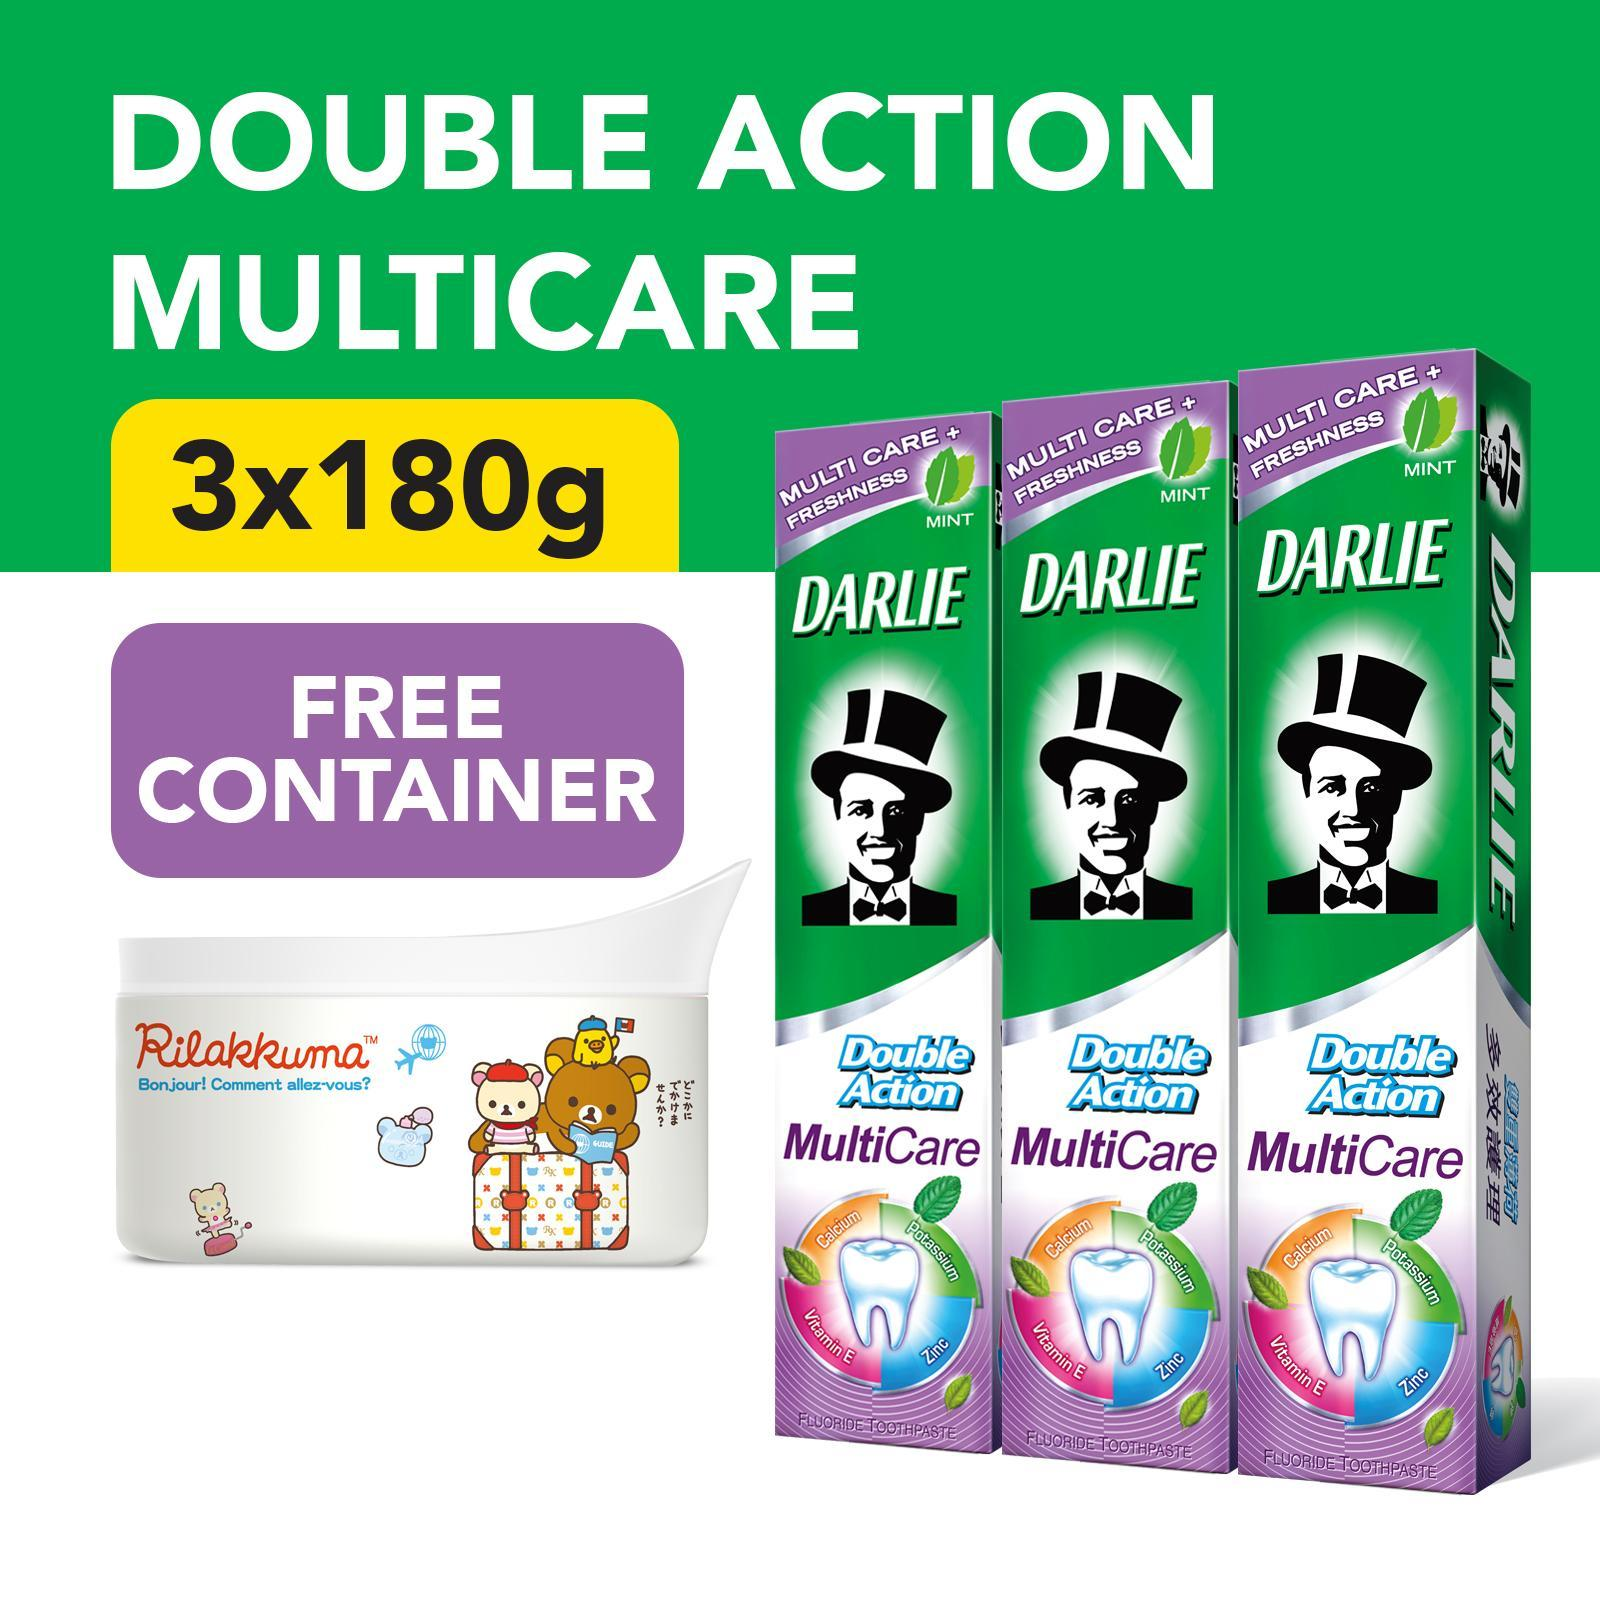 Darlie Double Action - Multicare 3s Toothpaste + Free Rilakkuma Container